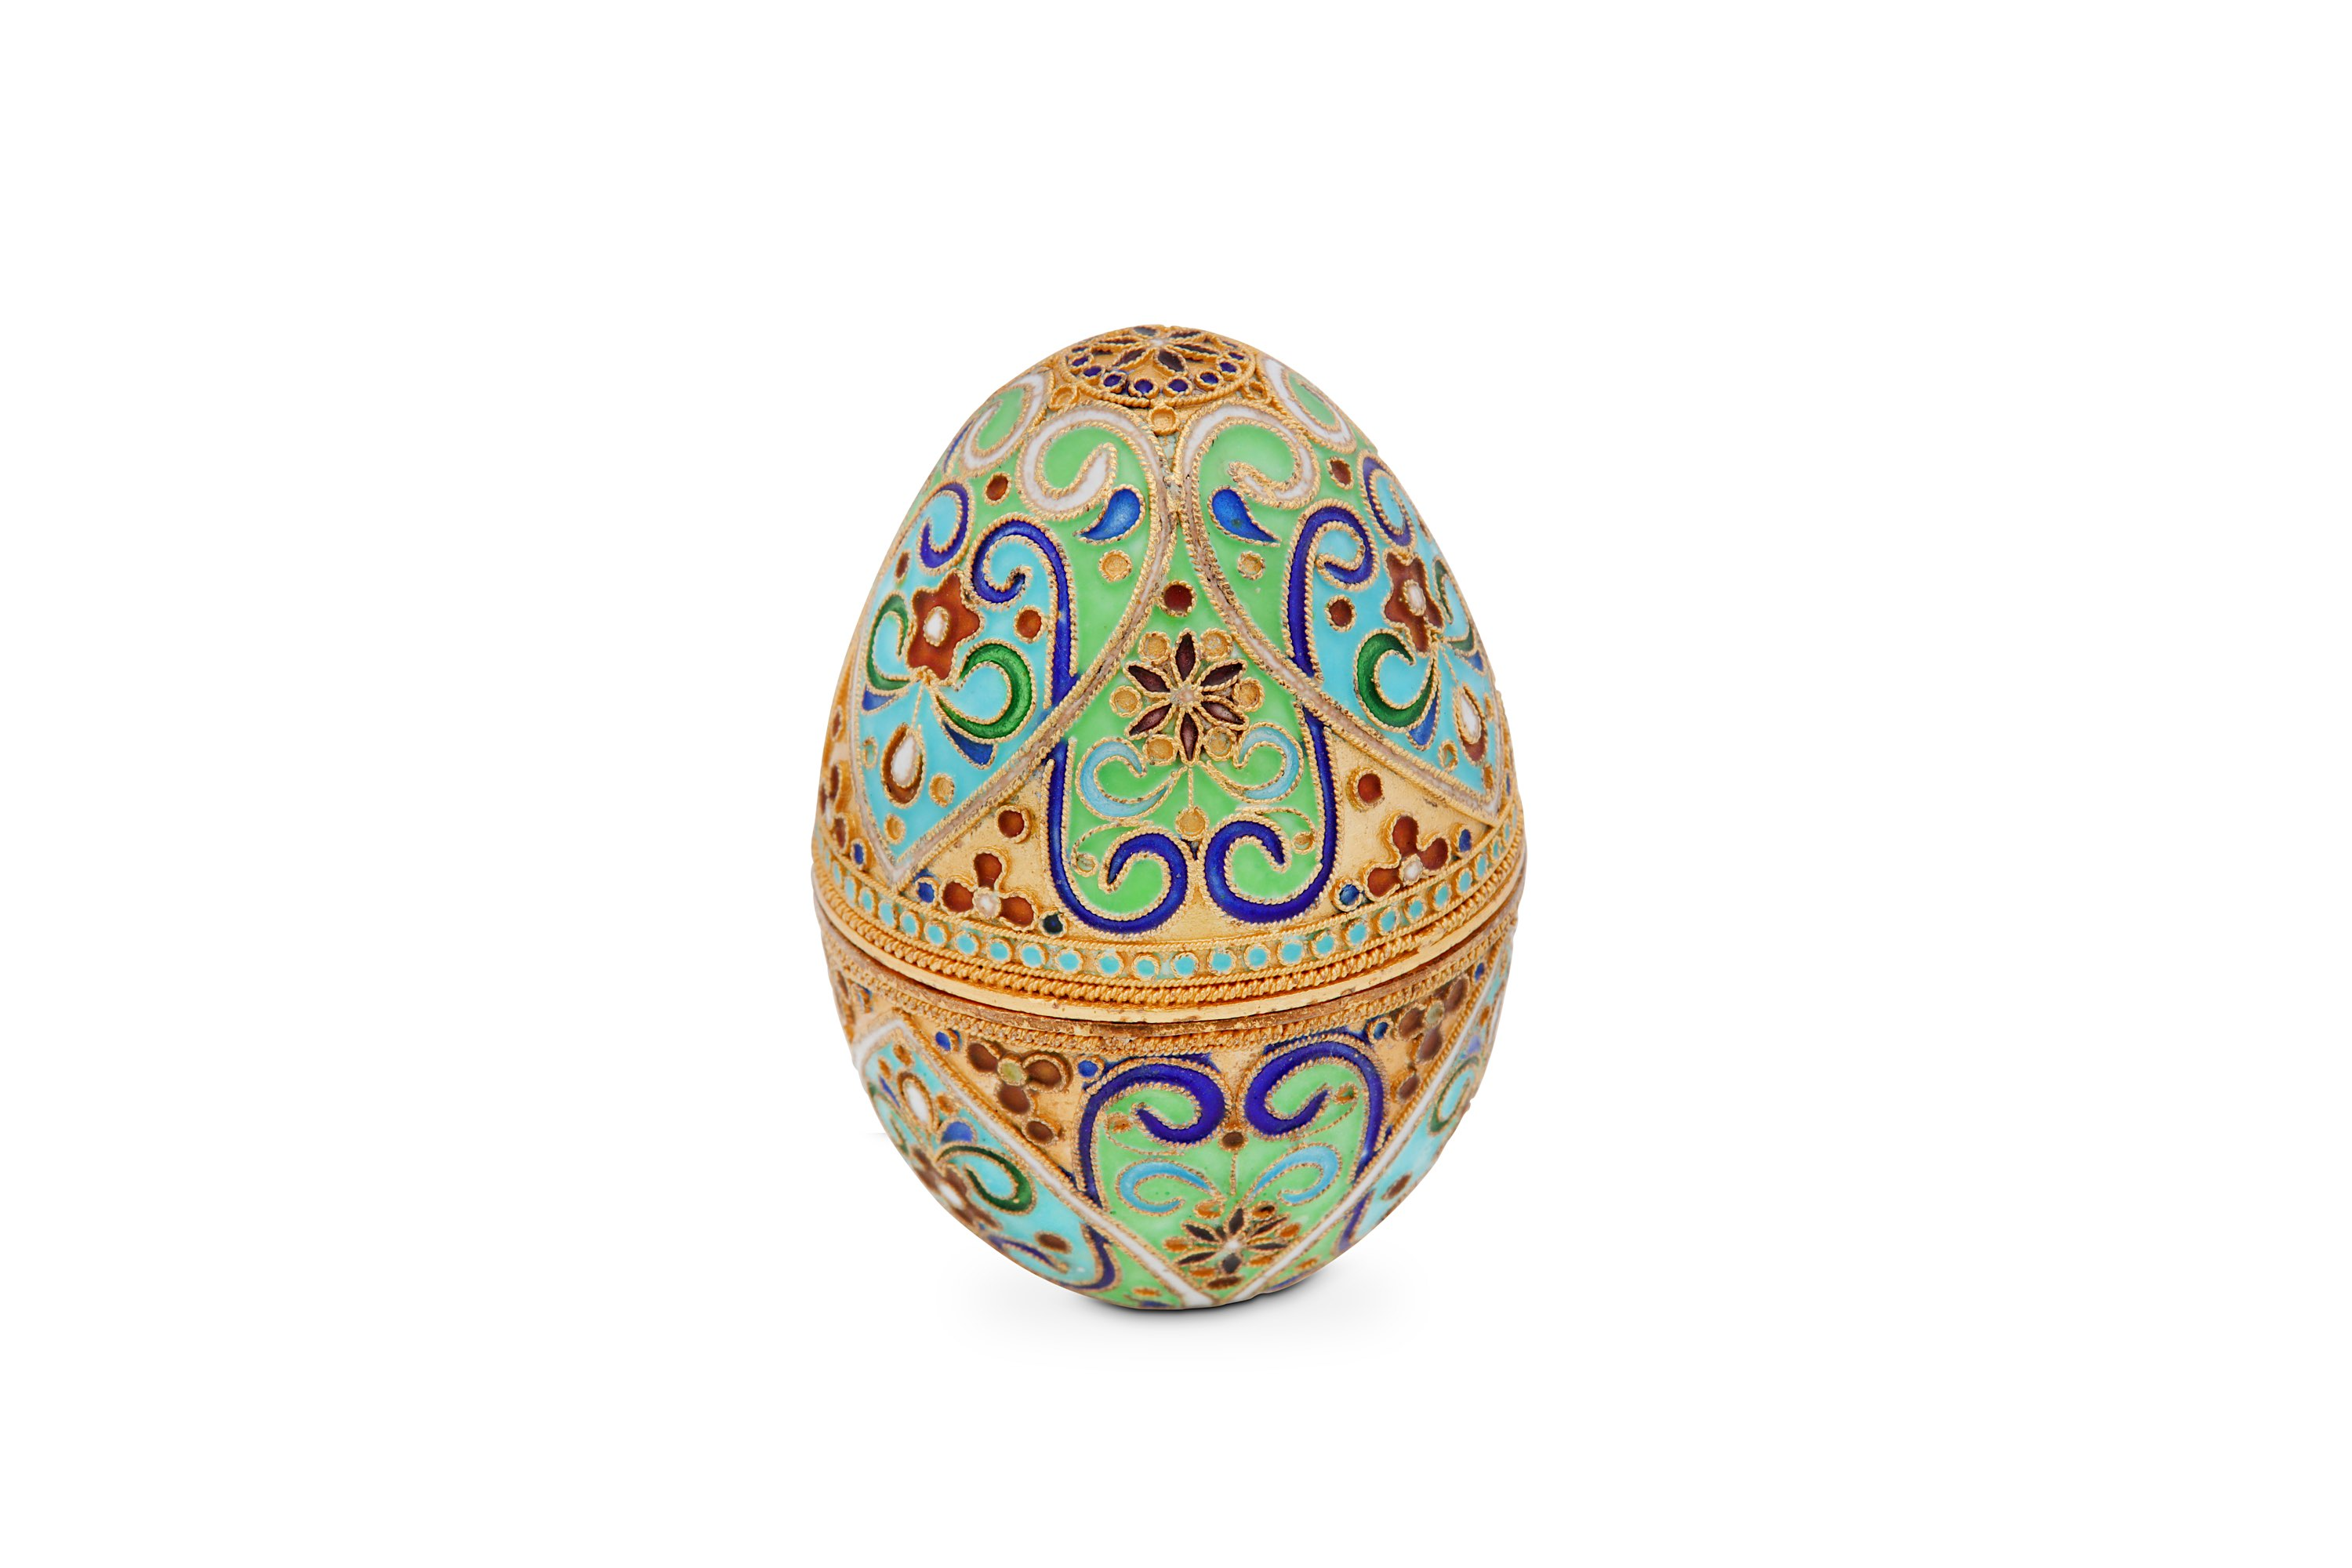 Lot 35 - A Modern Russian 84 zolotnik silver-gilt and enamel egg, St Petersburg